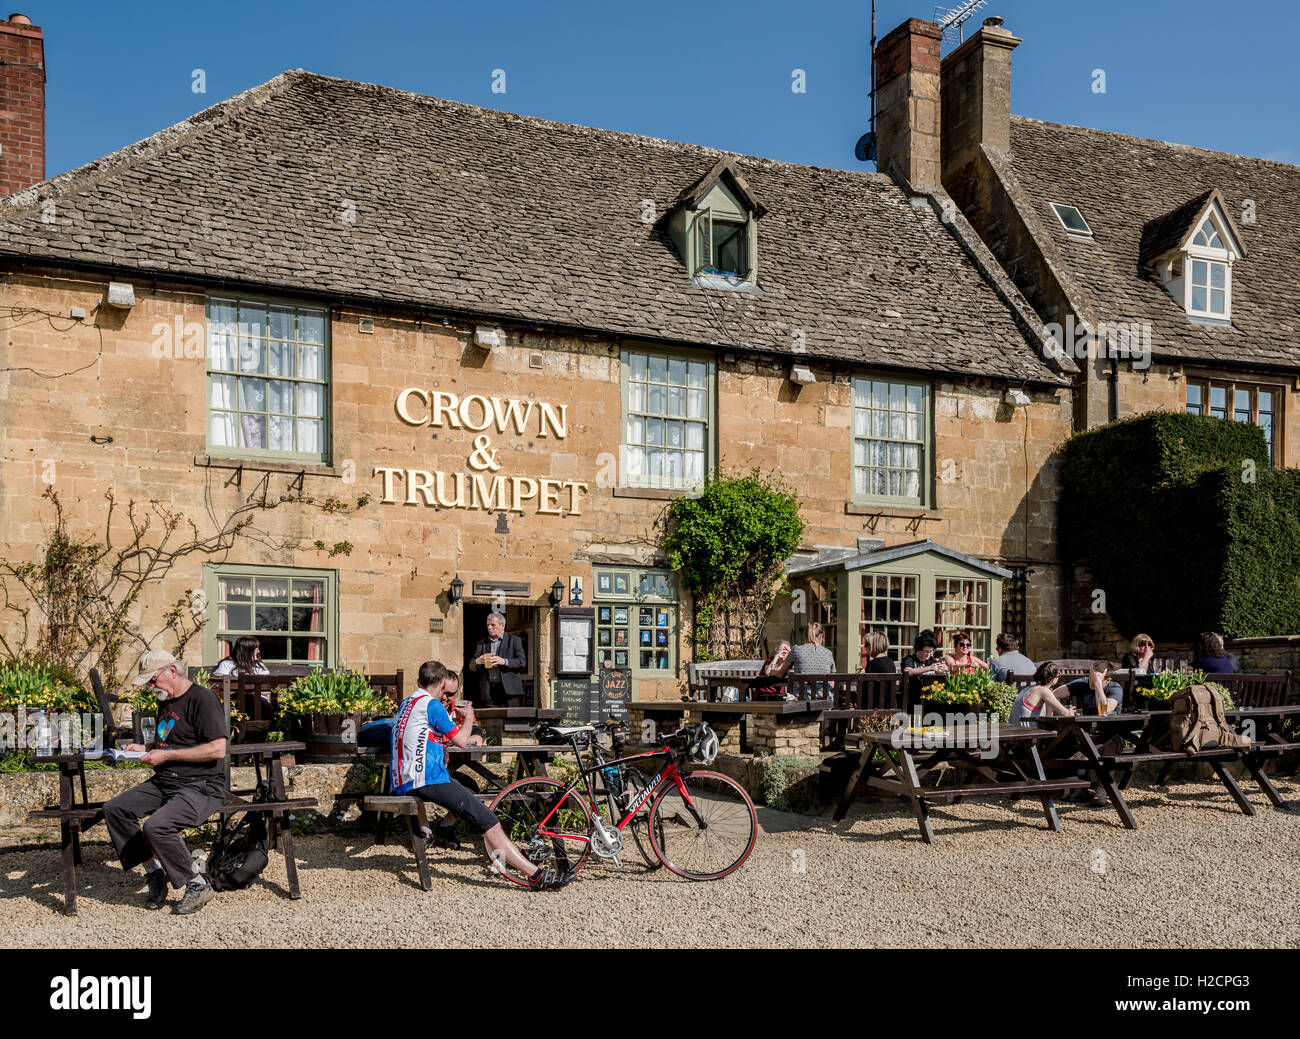 People enjoying an early evening drink in the sunshine in front of a typical village pub in the Cotswolds. - Stock Image